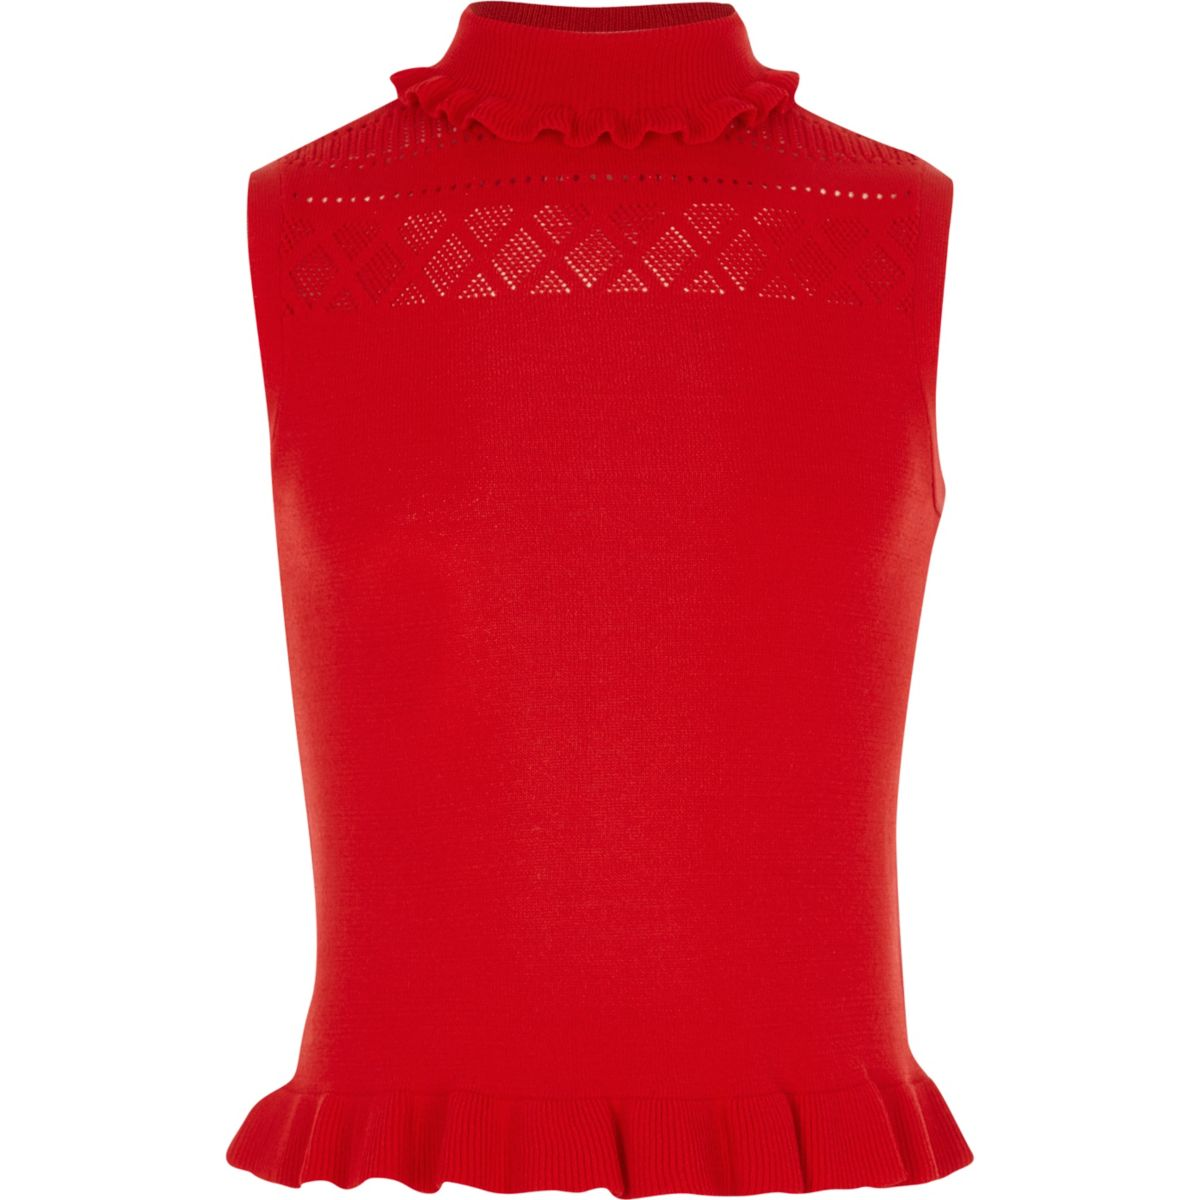 Girls red knit pointelle high neck top